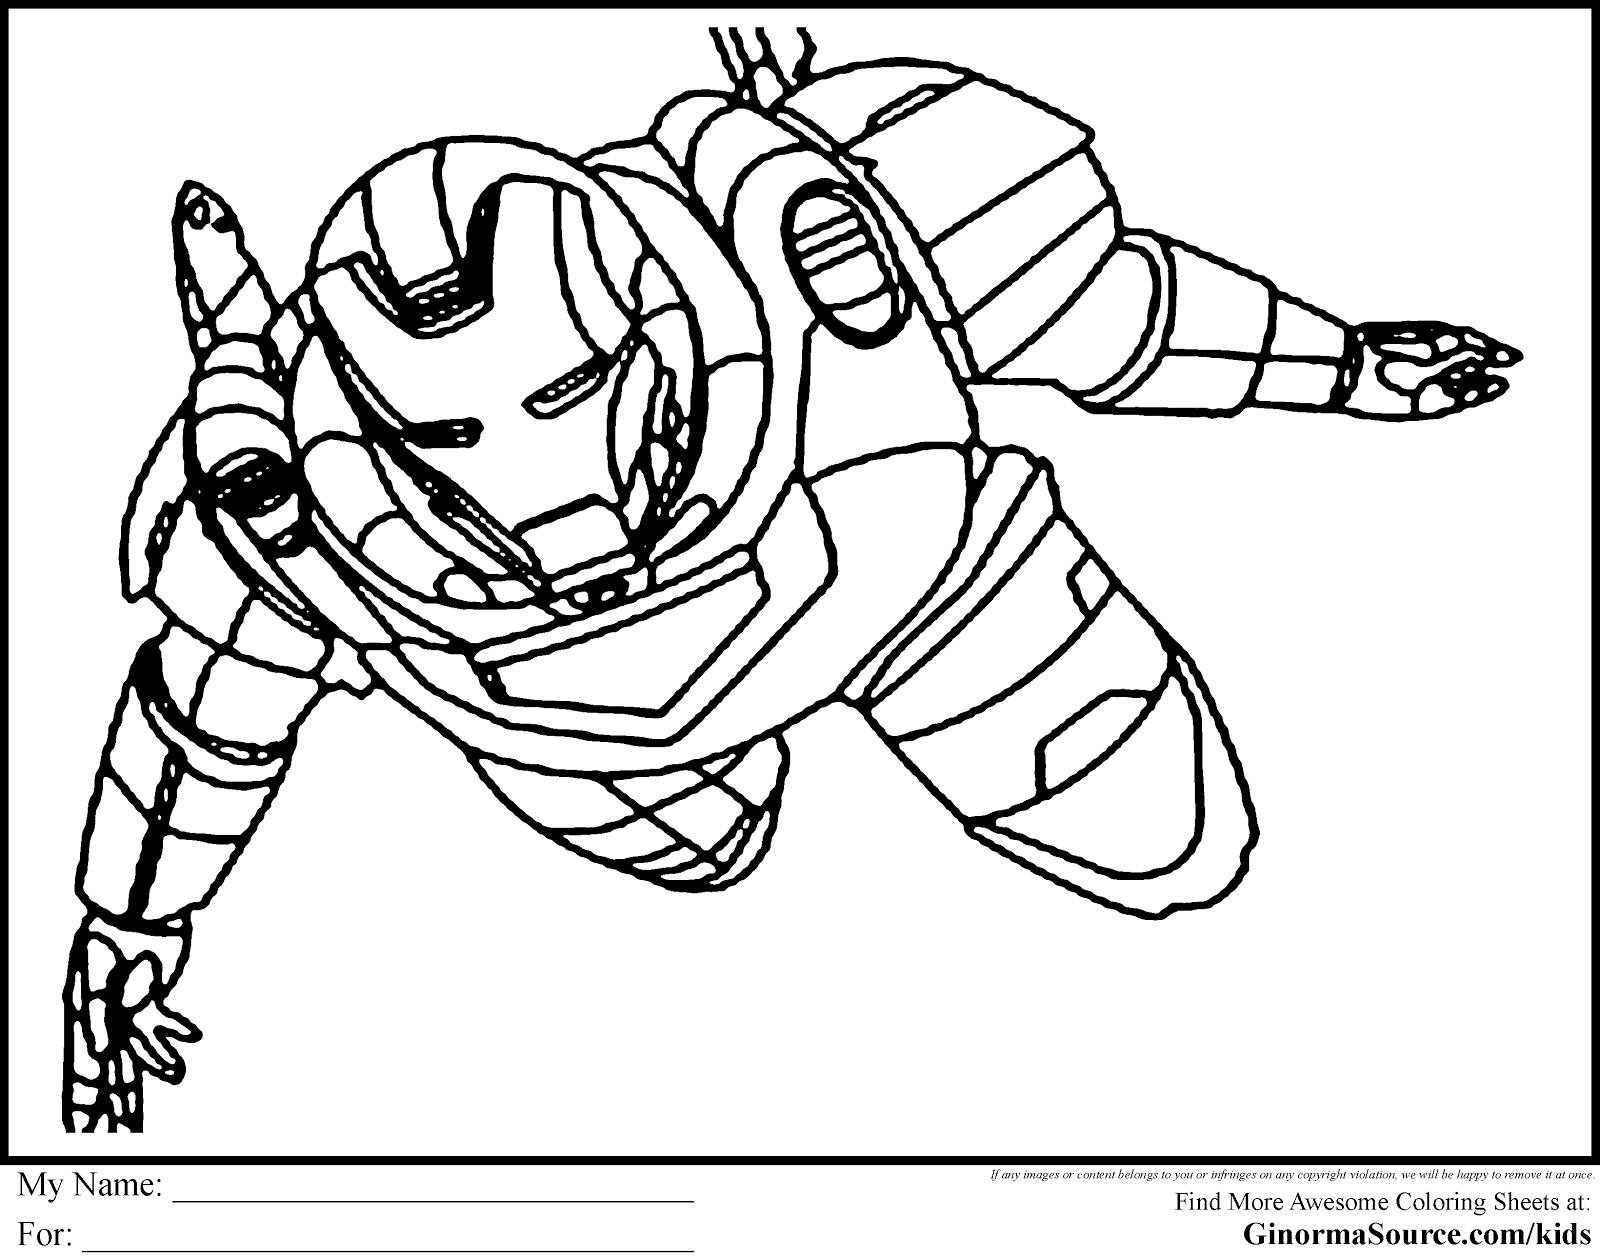 coloring pages for kids super heros superheroes coloring pages download and print for free for super pages heros coloring kids